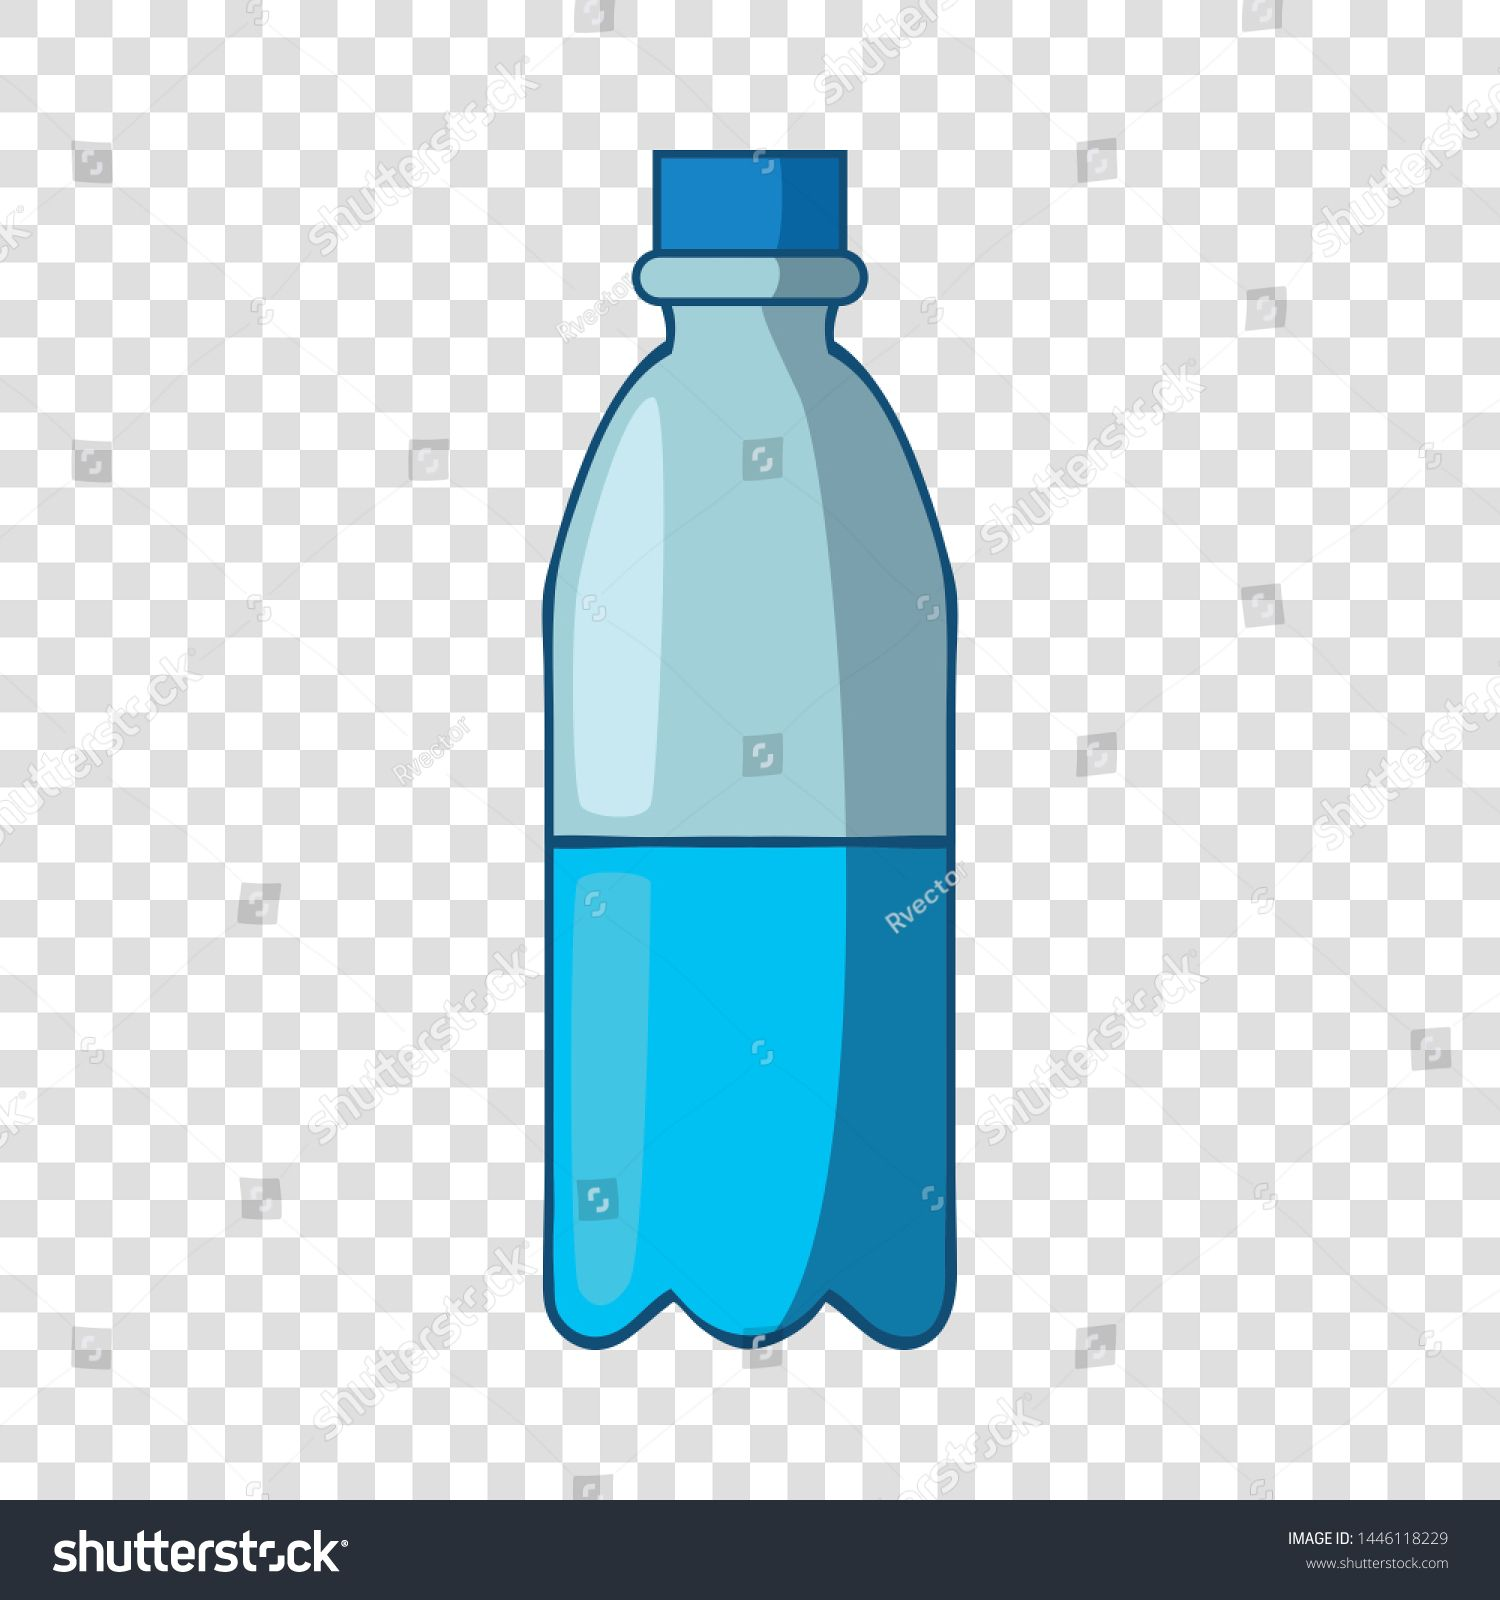 Bottle Of Water Icon Cartoon Illustration Of Bottle Of Water Vector Icon For Web Design Sponsored Spon Icon Cartoon Bottl Water Icon Bottle Water Bottle